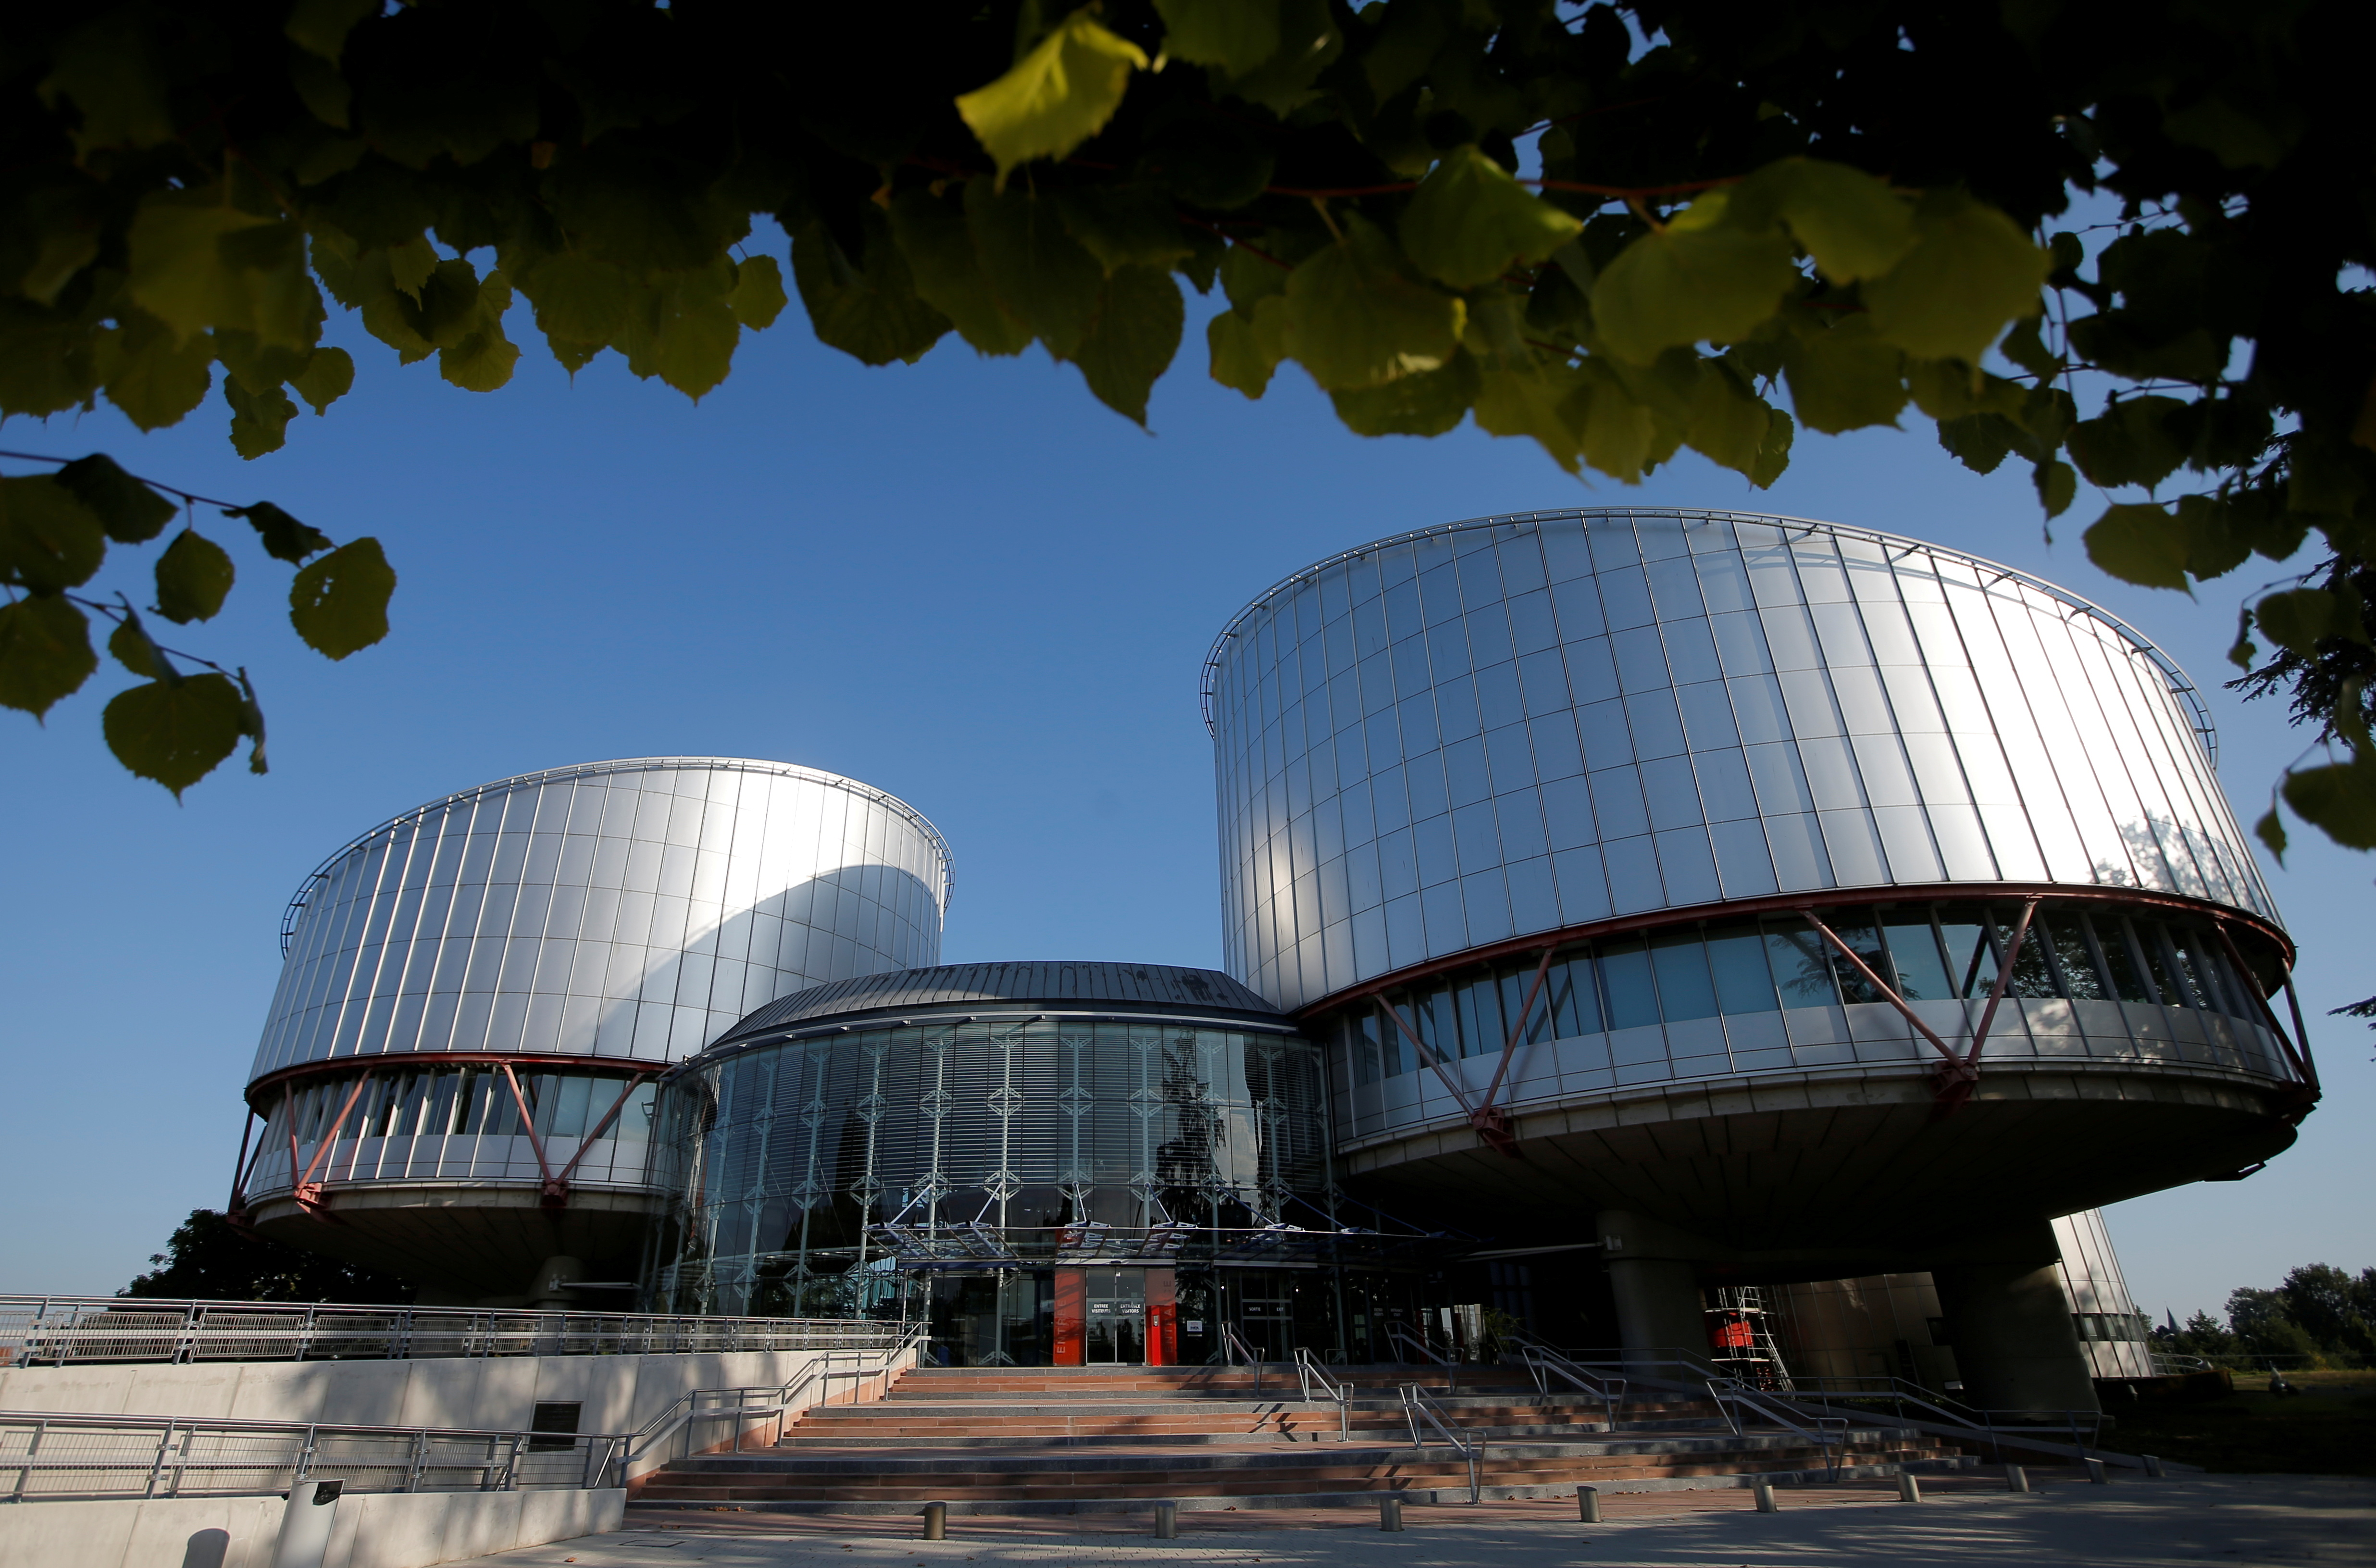 The building of the European Court of Human Rights is seen in Strasbourg, France, September 11, 2019.  REUTERS/Vincent Kessler/File Photo